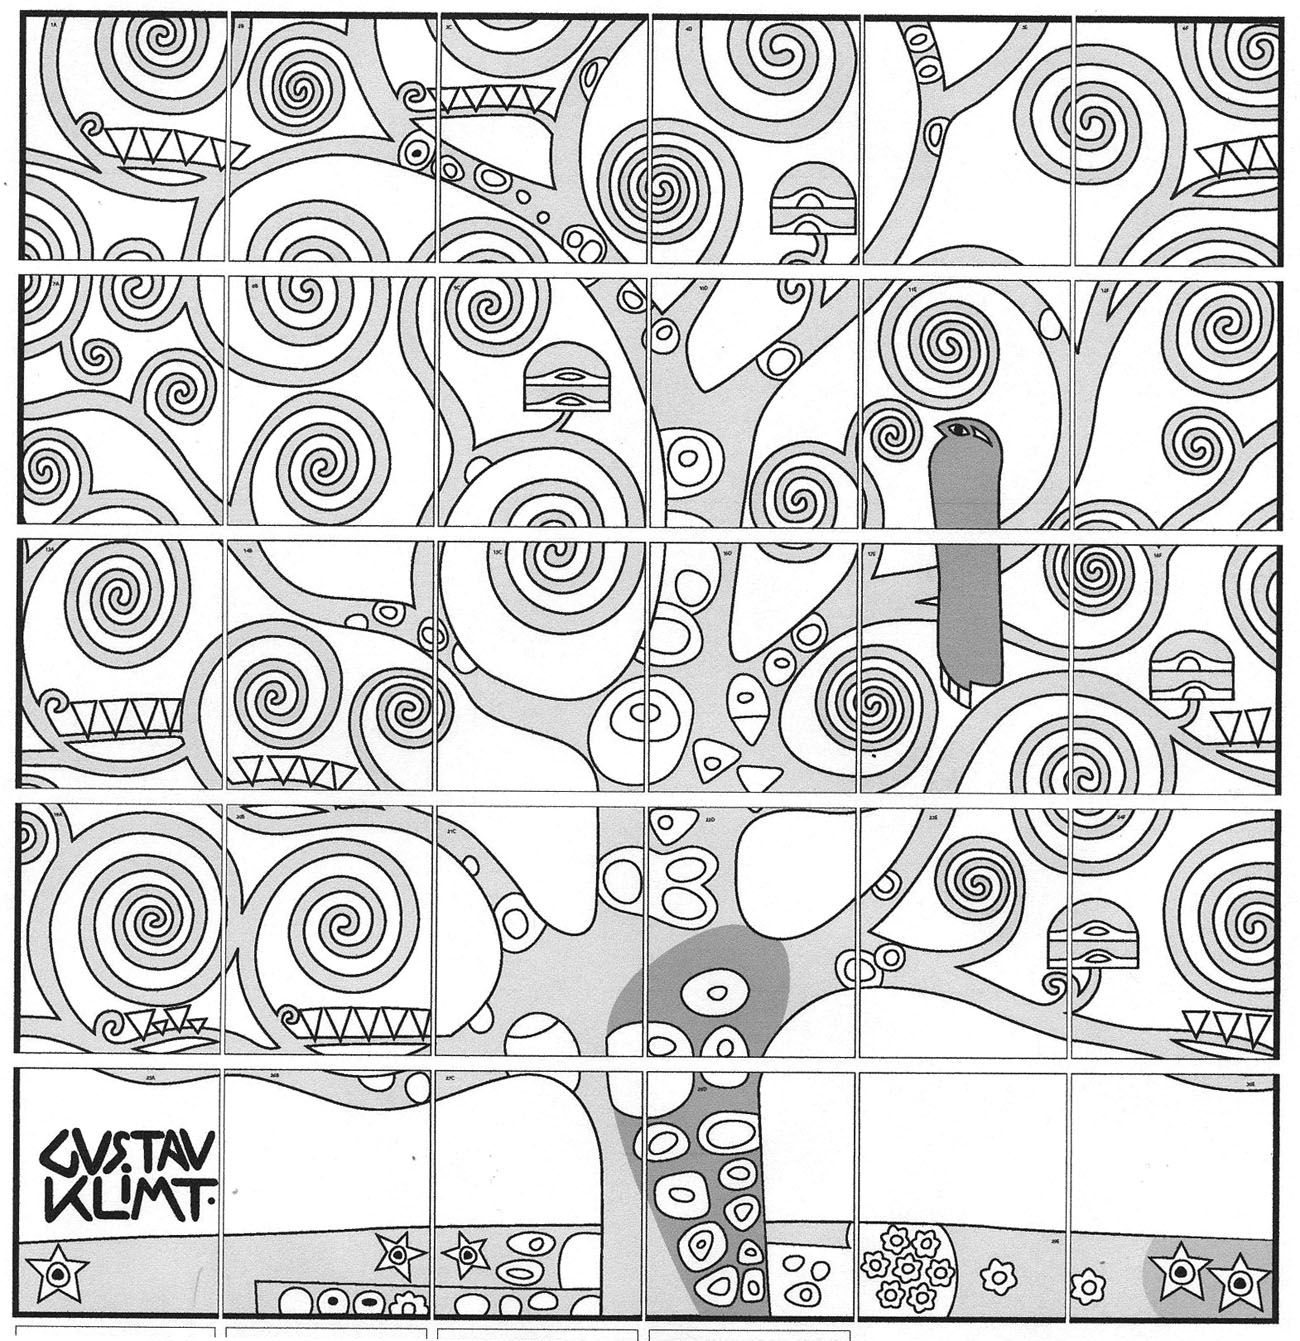 d arte mural coloring pages - photo#15